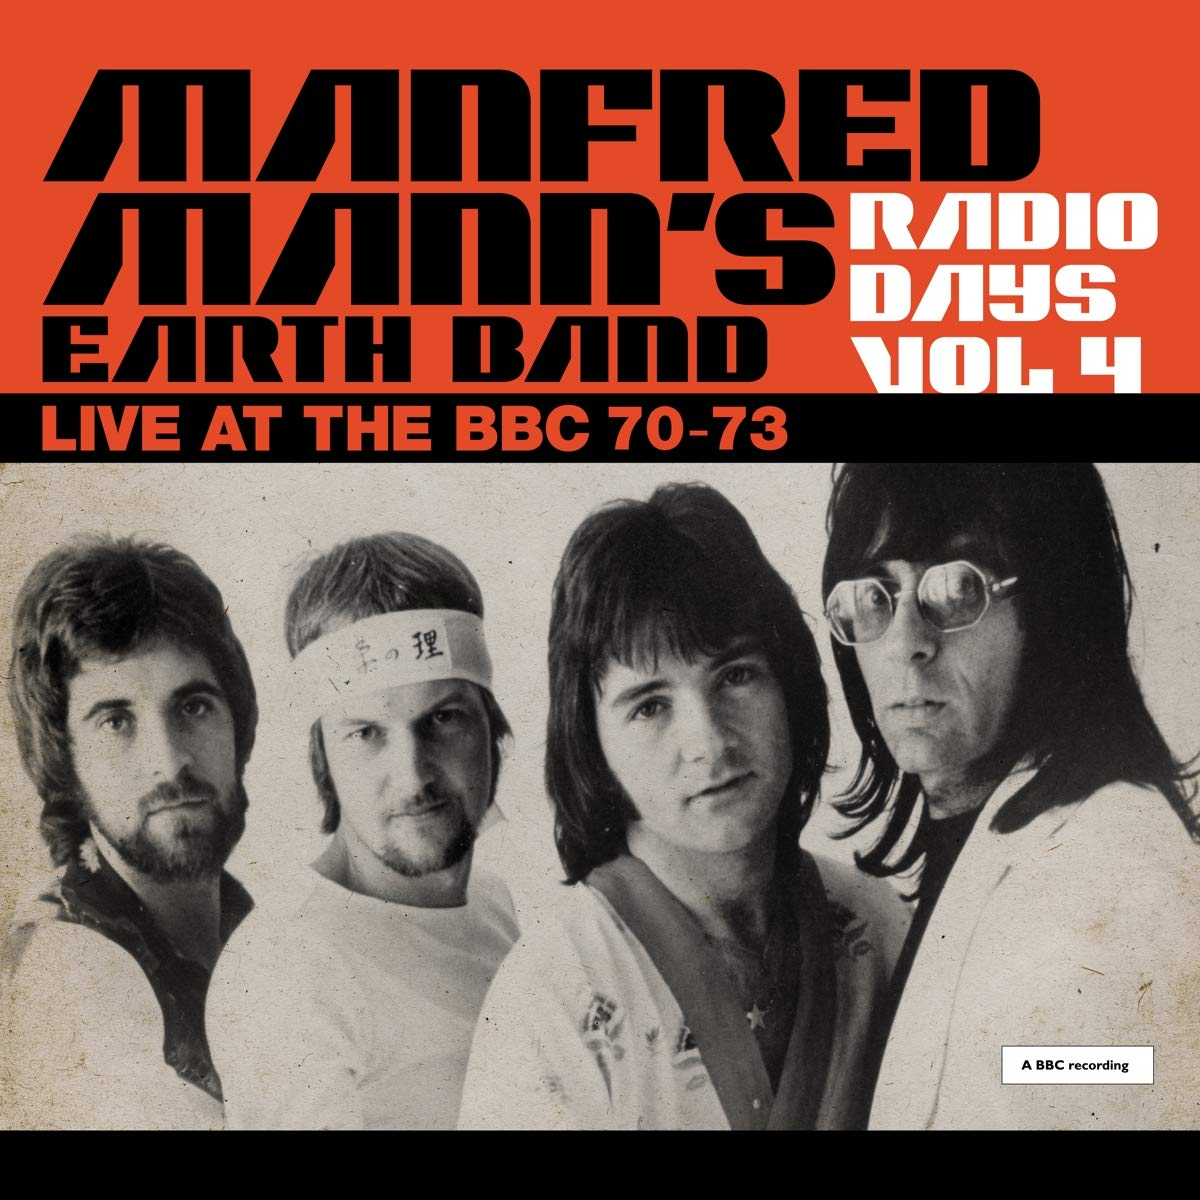 Manfred Mann's Earth Band — Radio Days Vol 4 - Earth Band